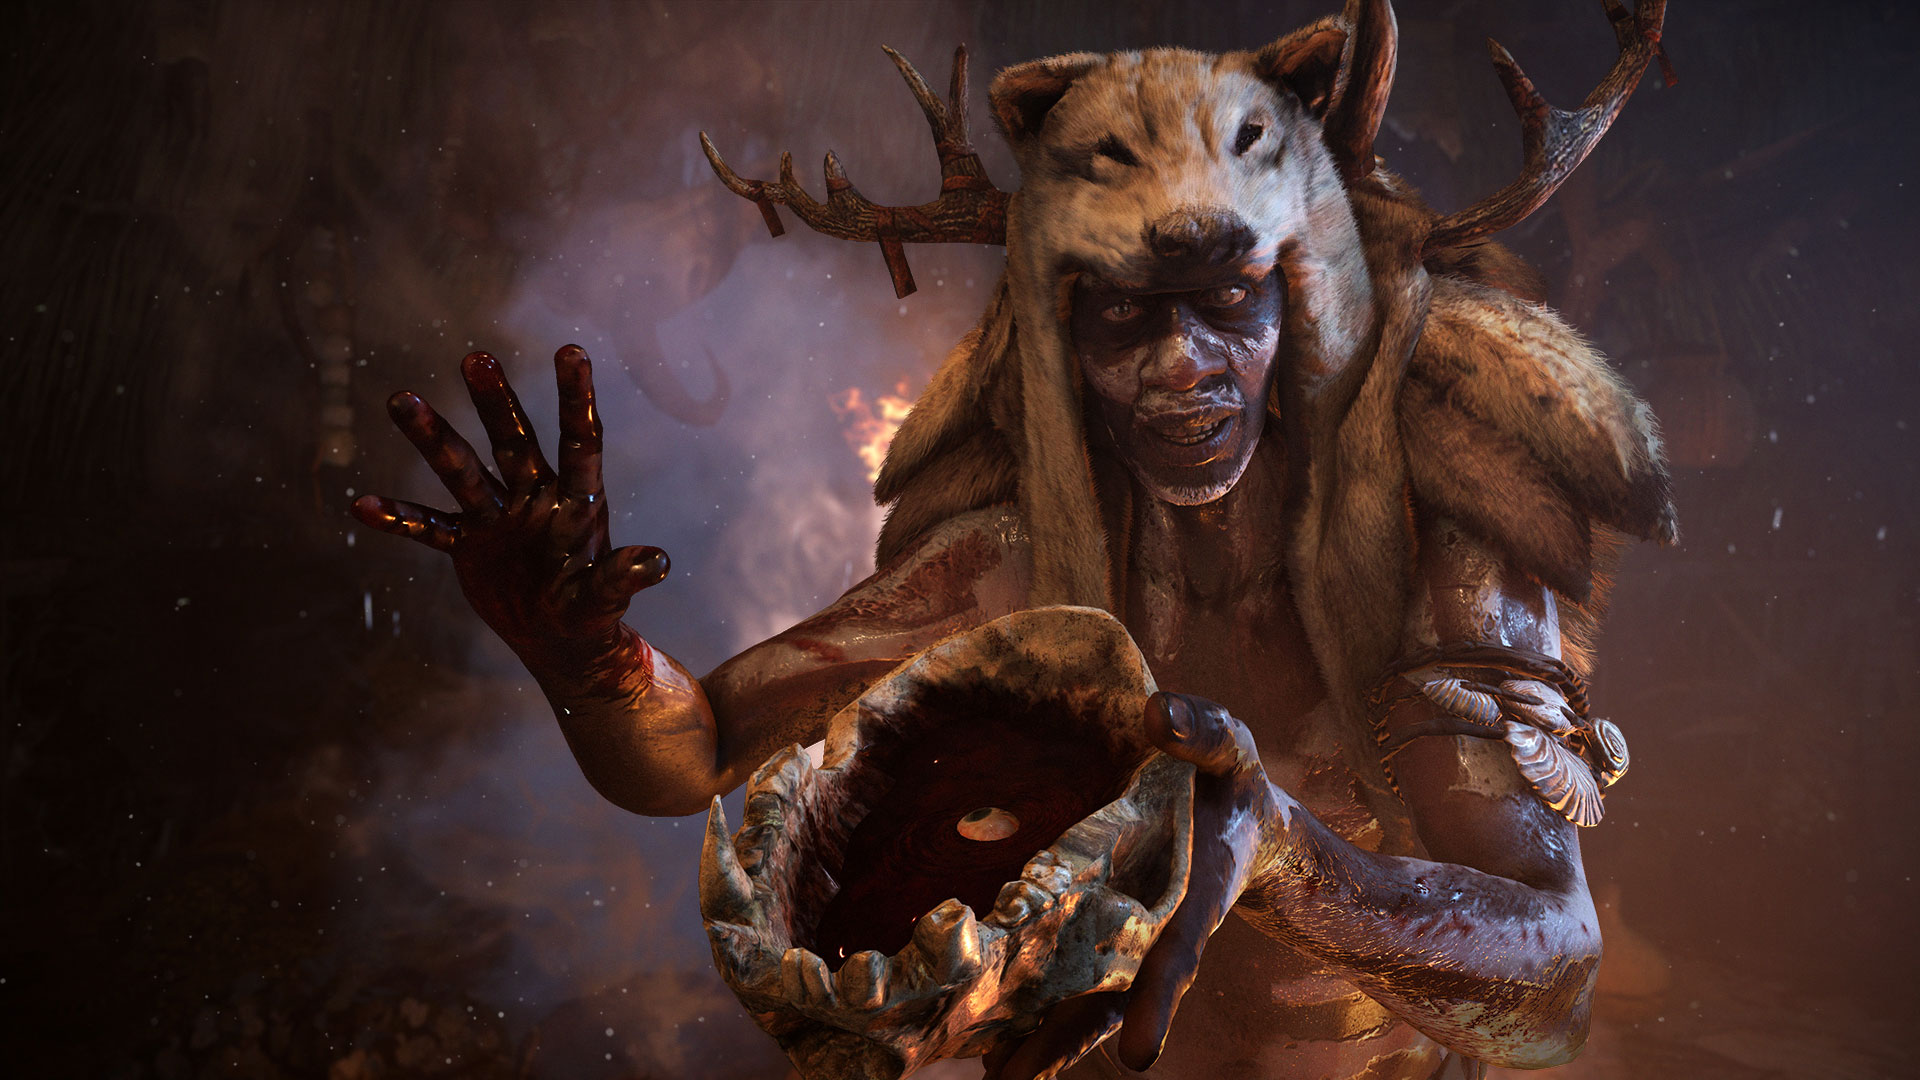 Far Cry Primal S Esrb Rating Promises Torture Mutilation And Sex Pc Gamer